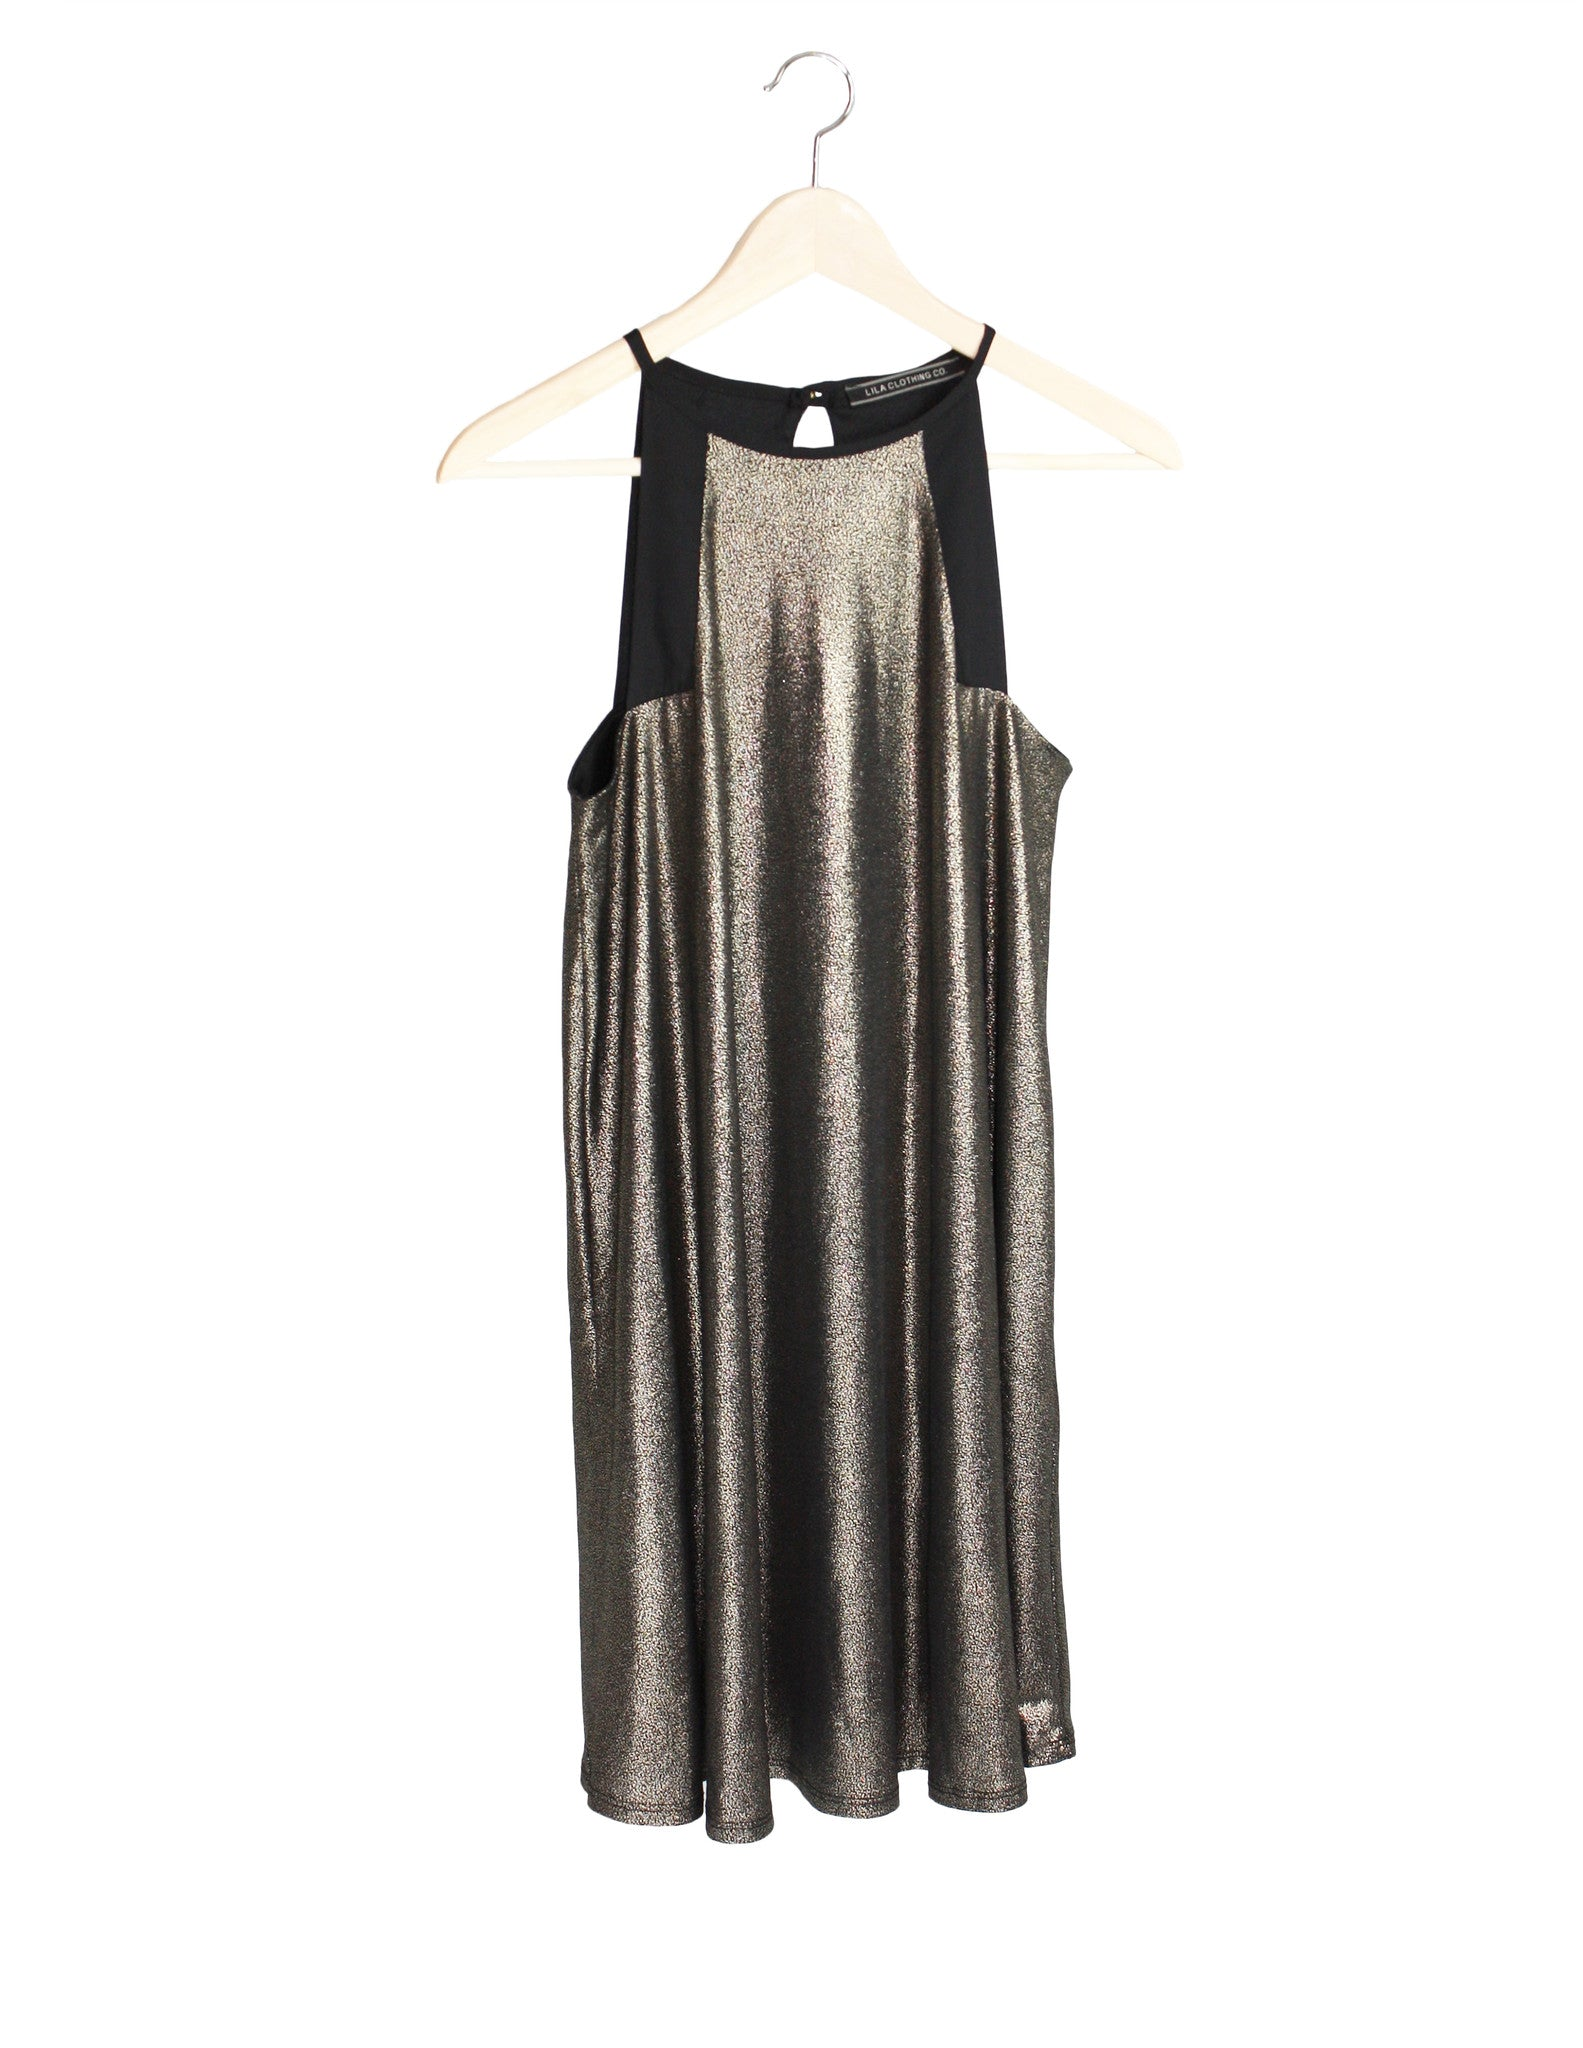 Gold Glitter Shift Dress / Ethical Fashion